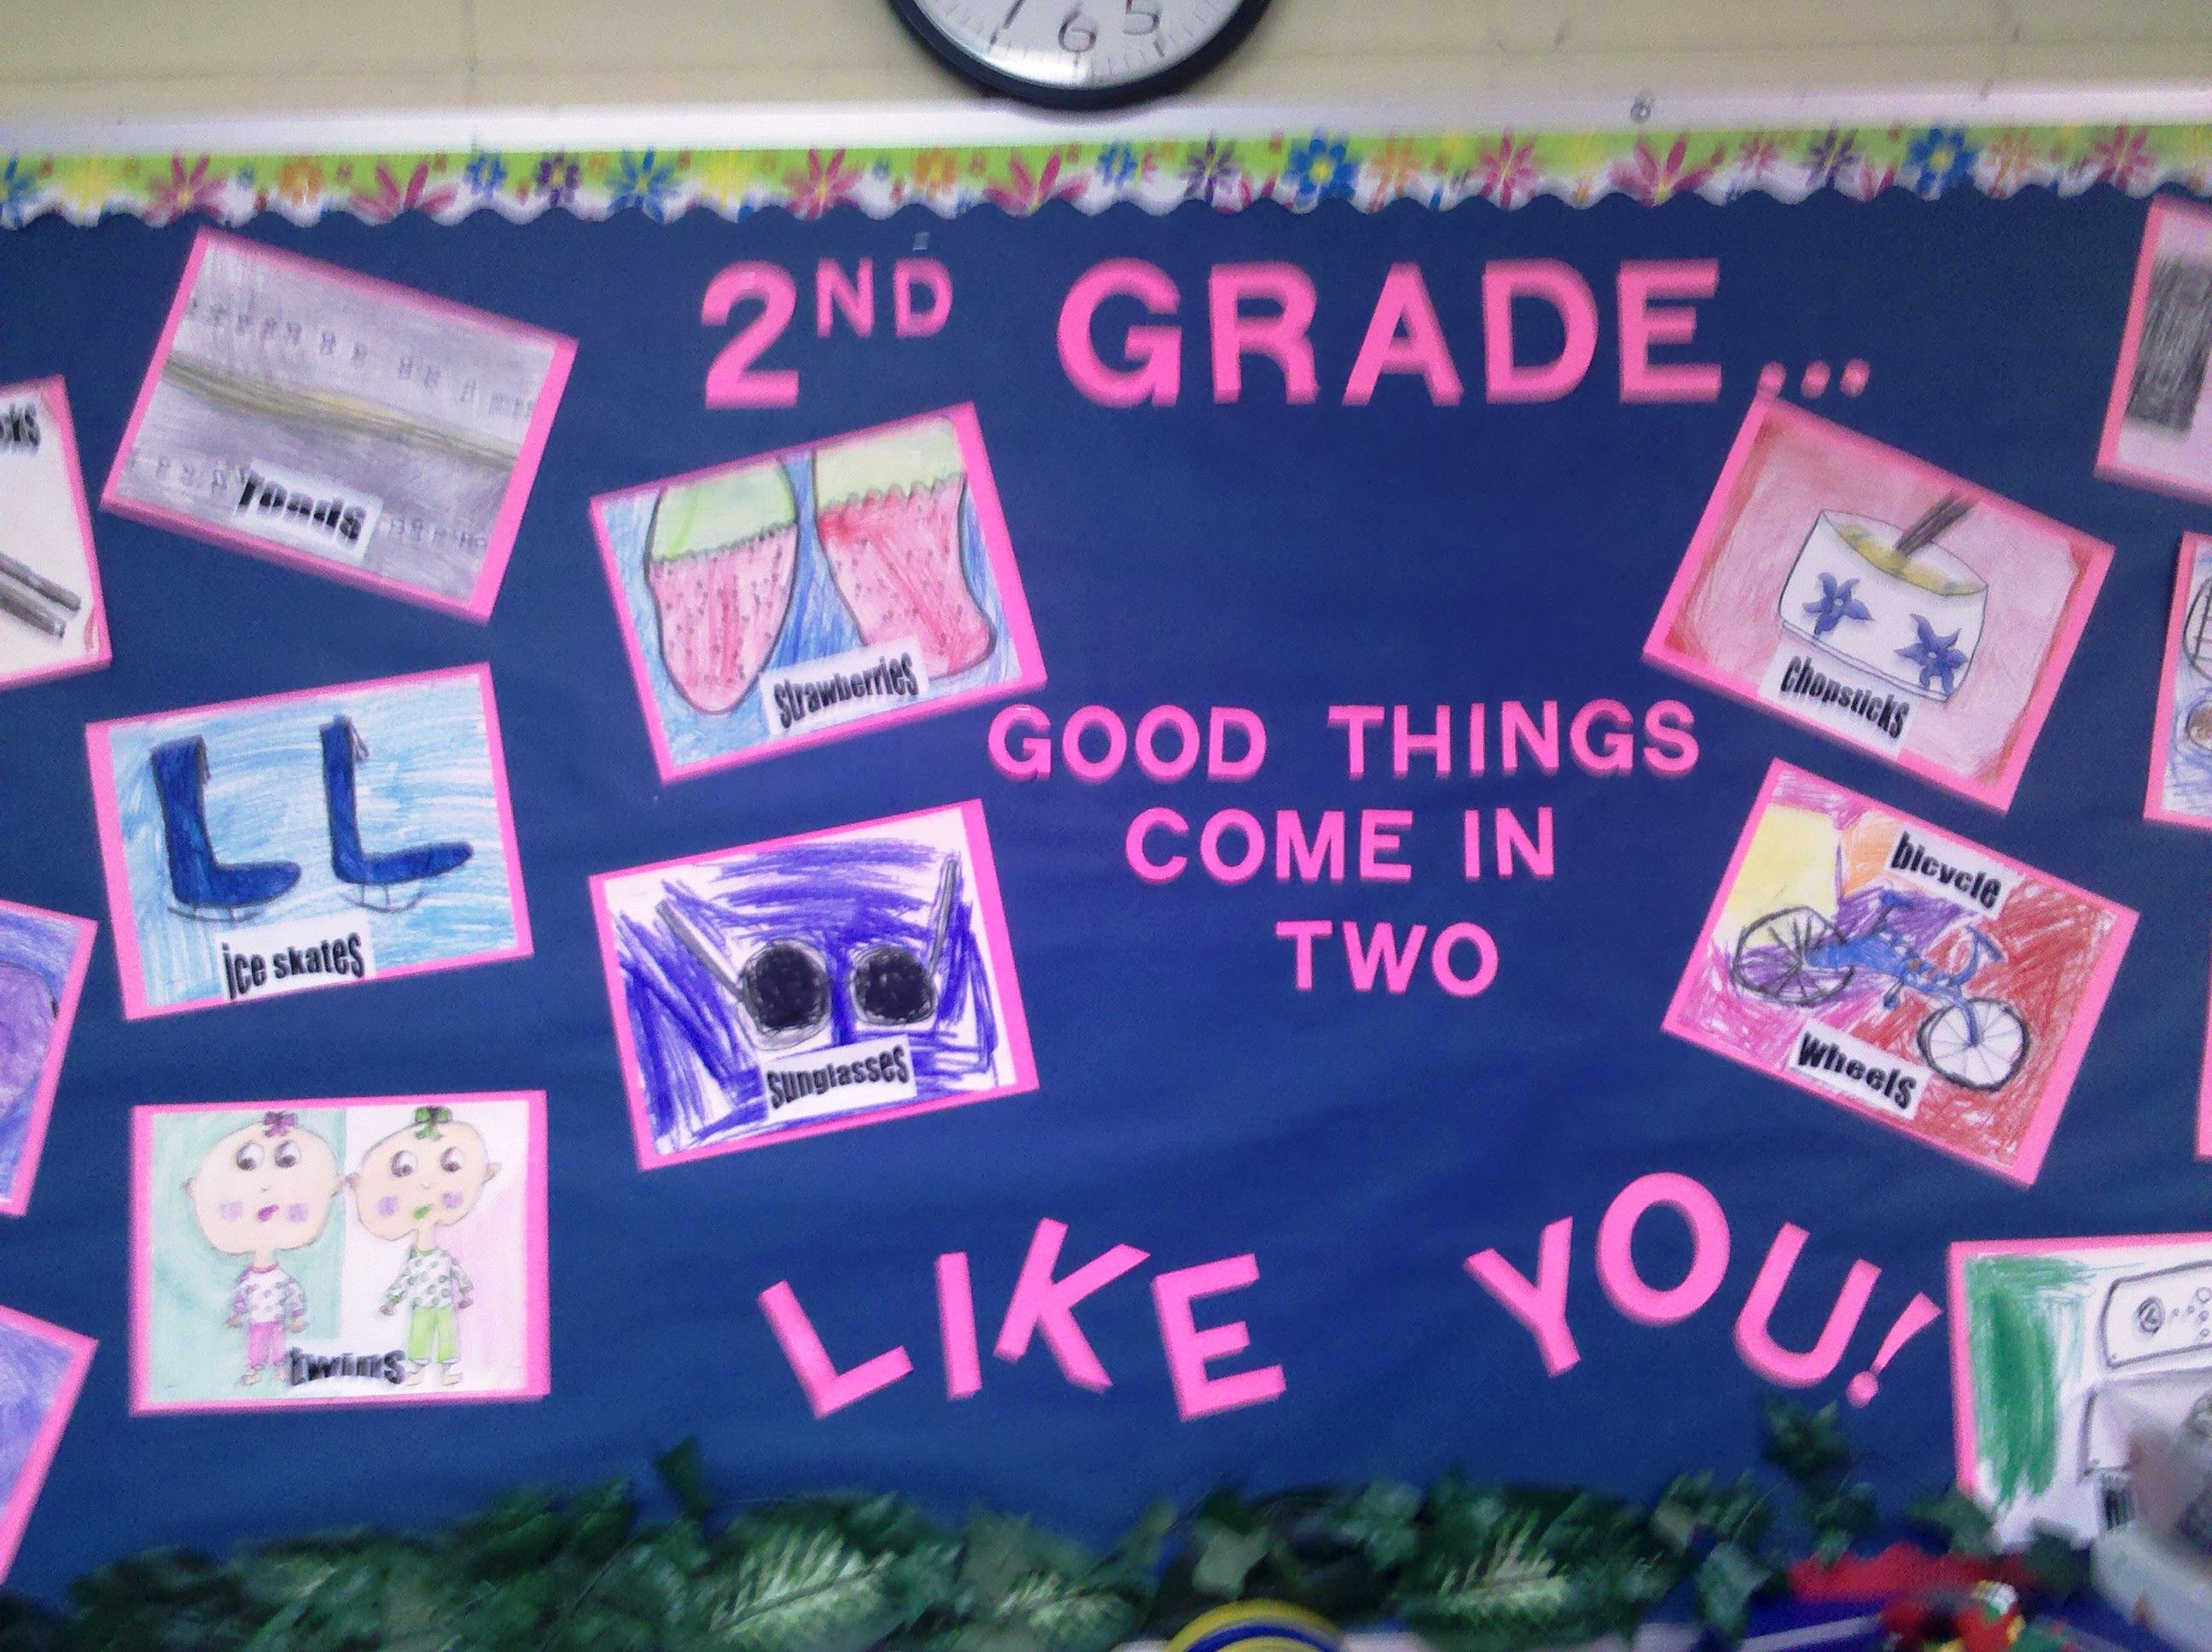 First Week Of School Good Things Come In Two Grade 2